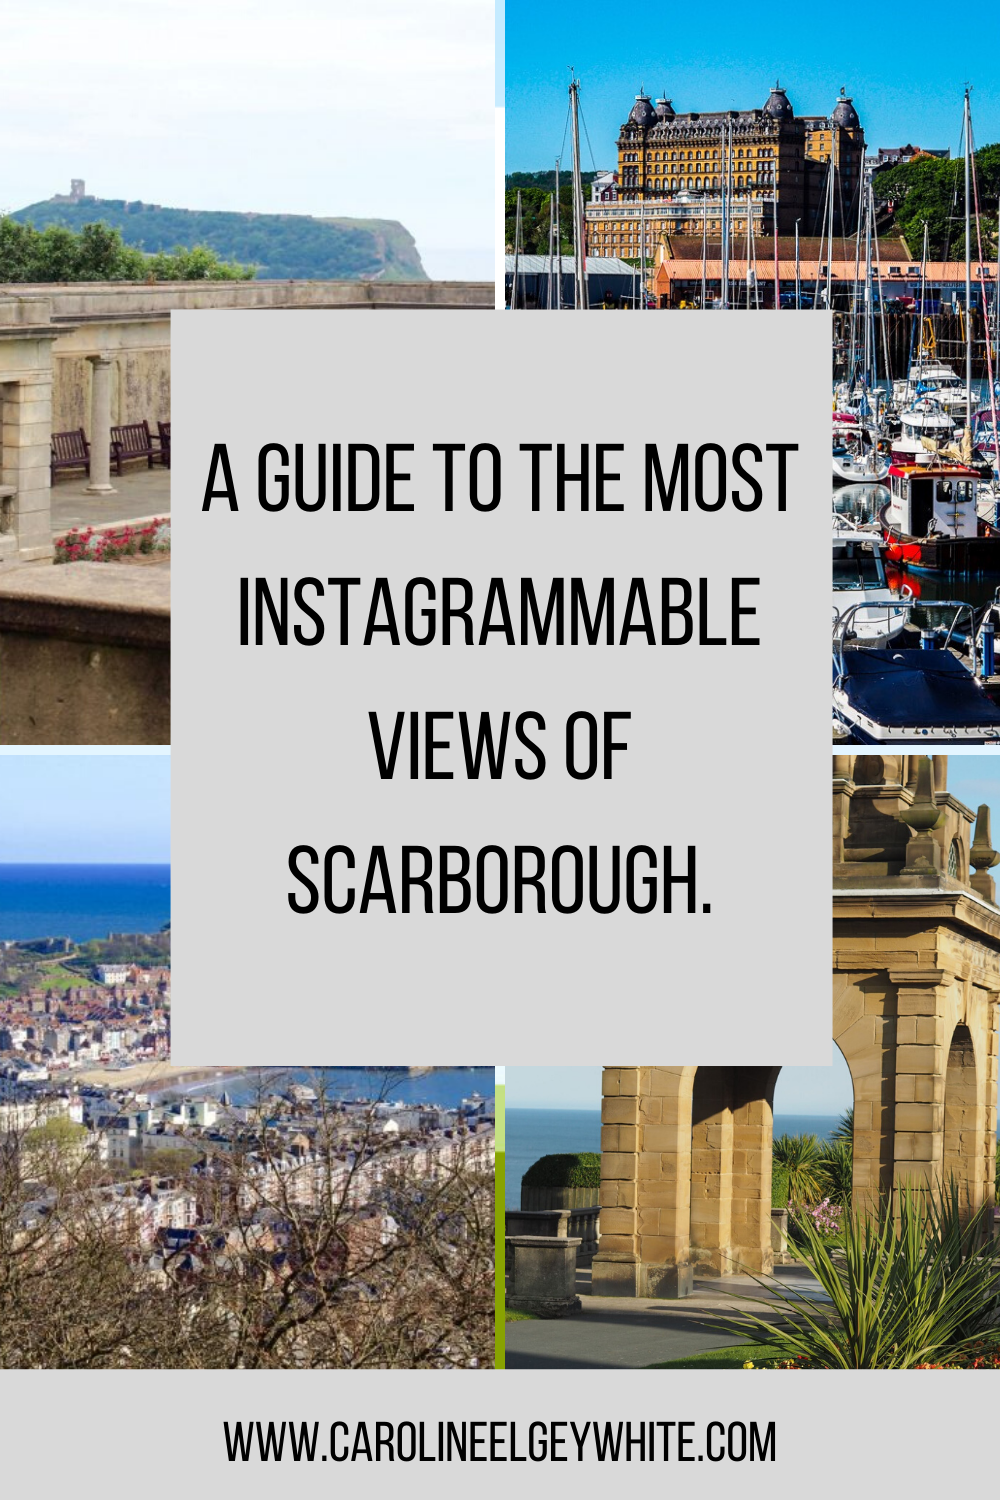 A guide to the most Instagrammable views of Scarborough.